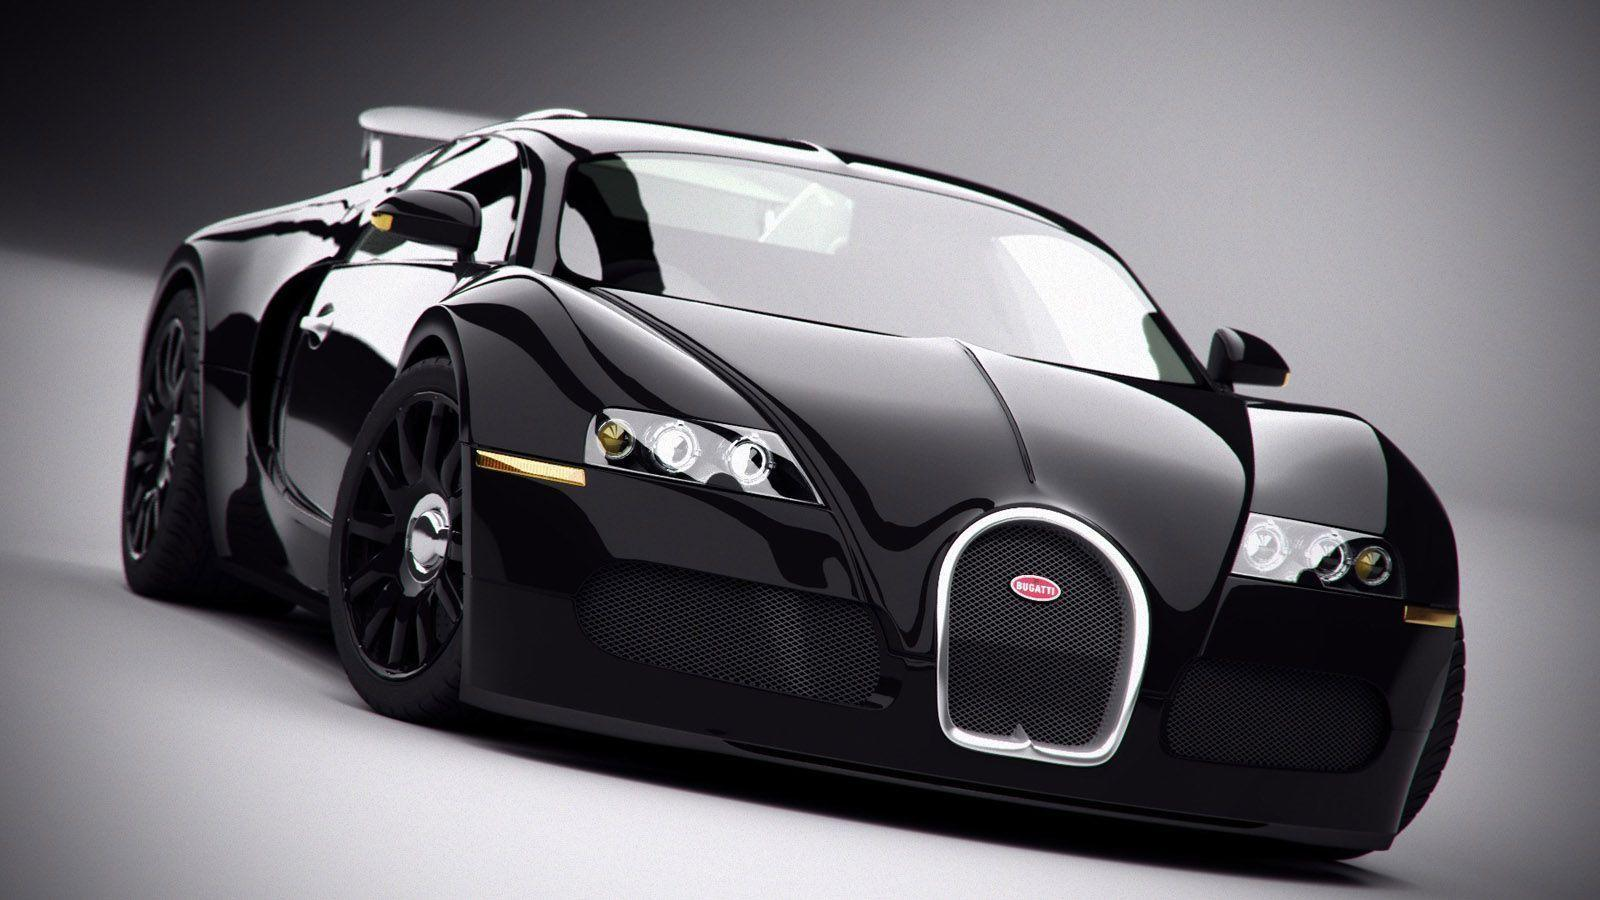 2015 Bugatti Veyron Horsepower HD Backgrounds And Wallpapers